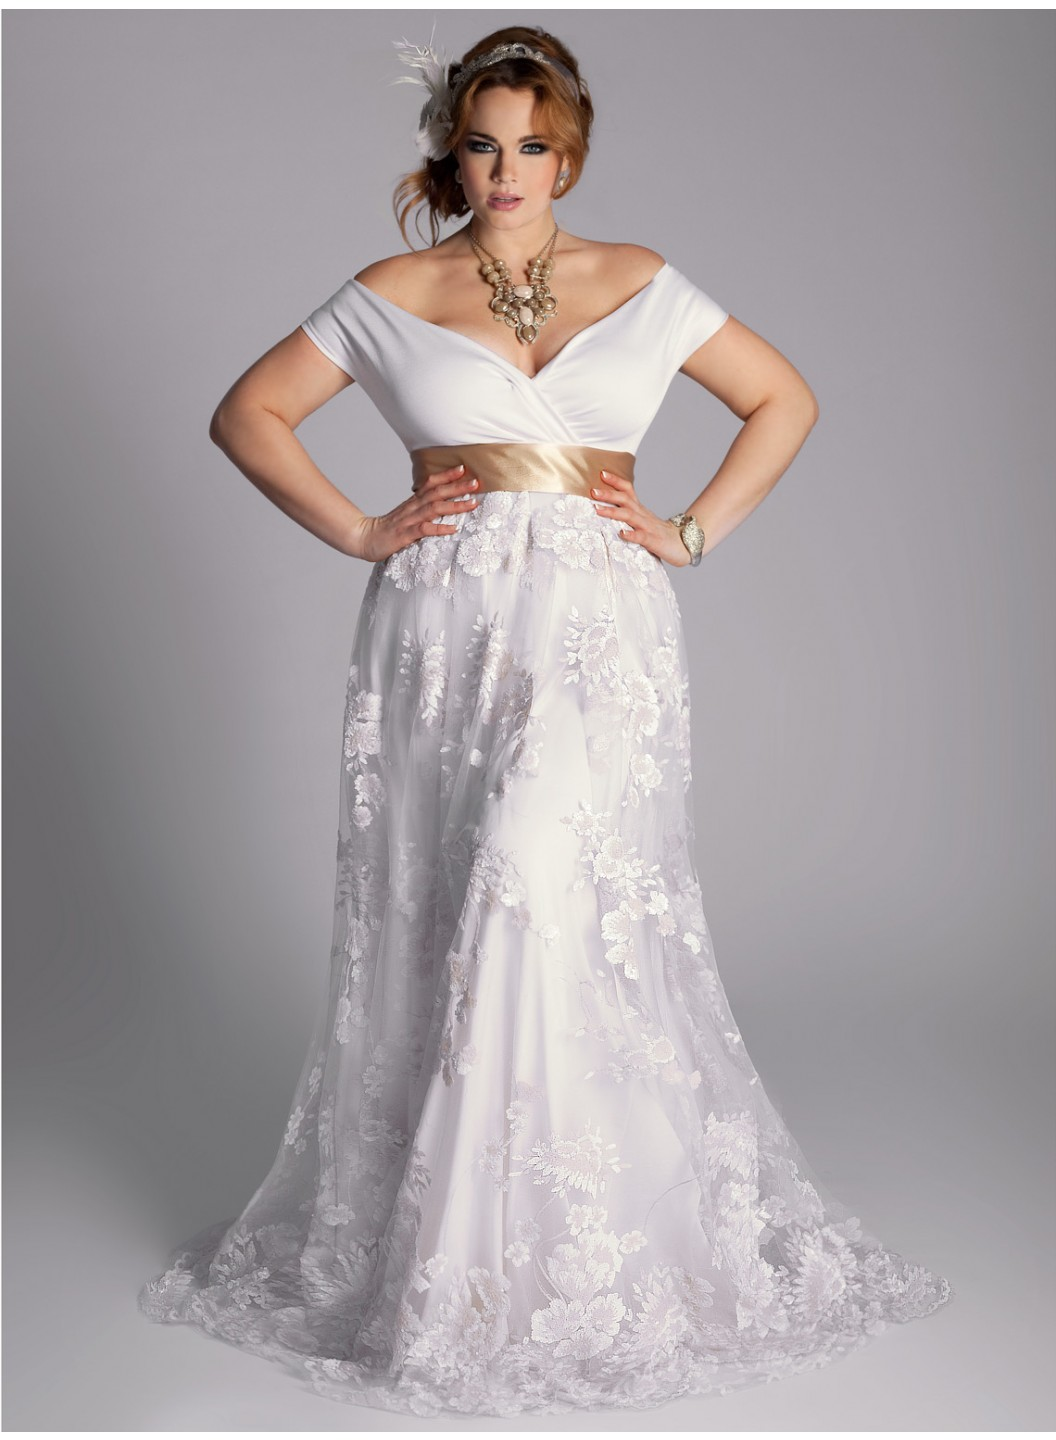 Plus size wedding dresses dressed up girl for What is my wedding dress size